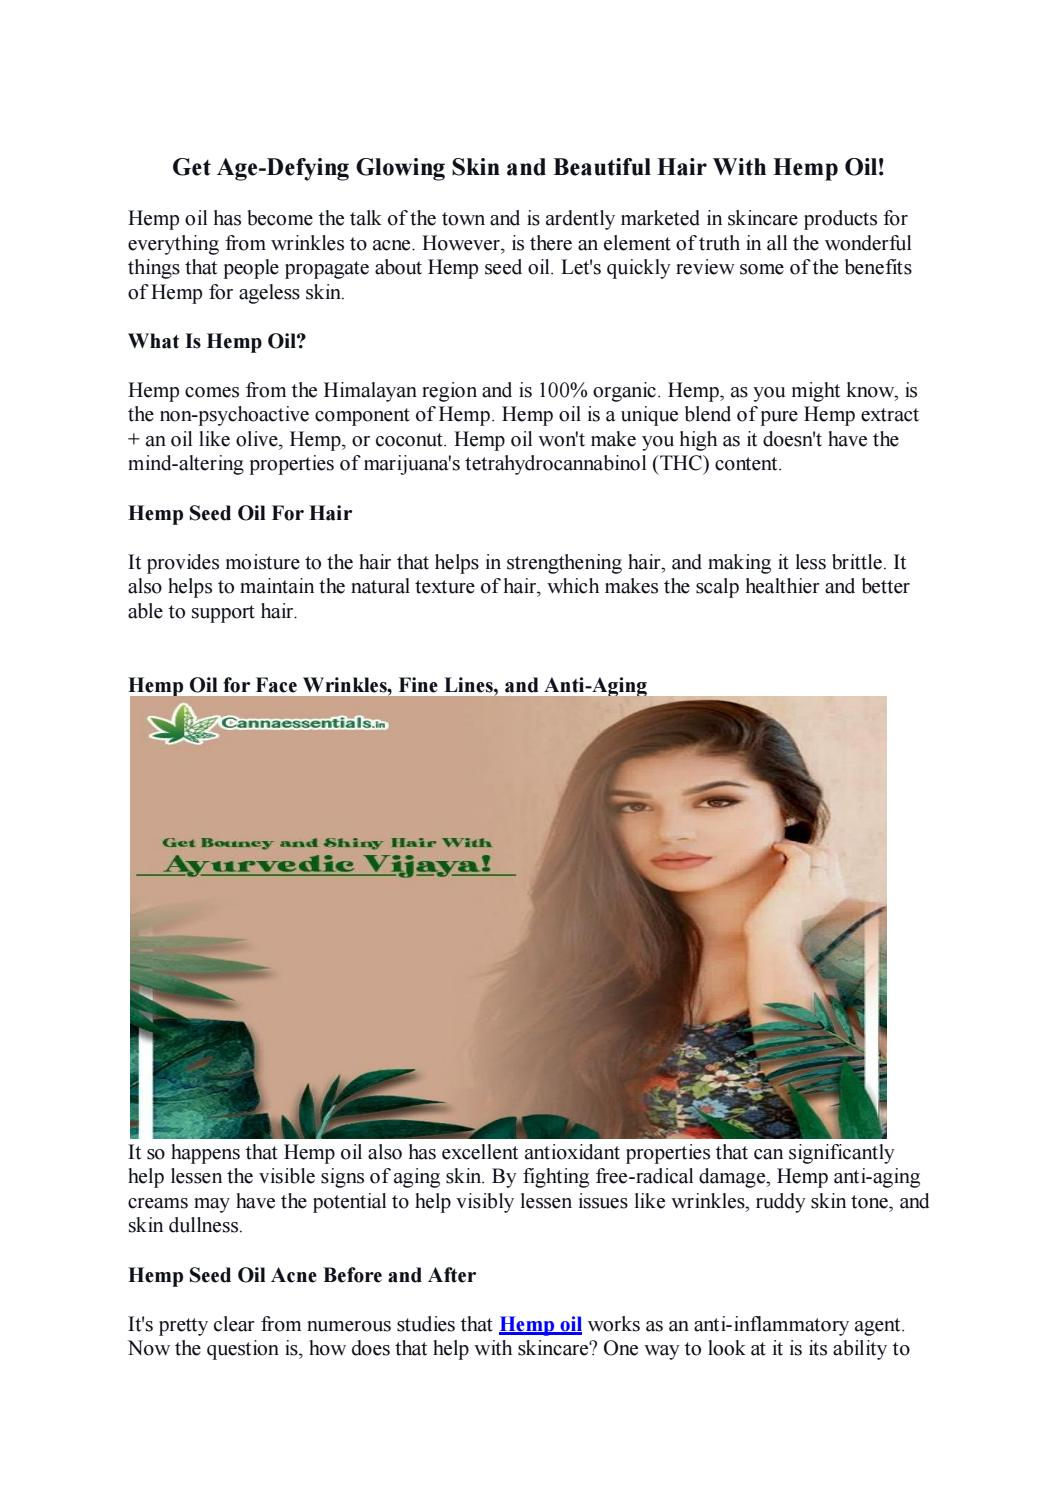 Get Age Defying Glowing Skin And Beautiful Hair With Hemp Oil By Cannaessentials Issuu